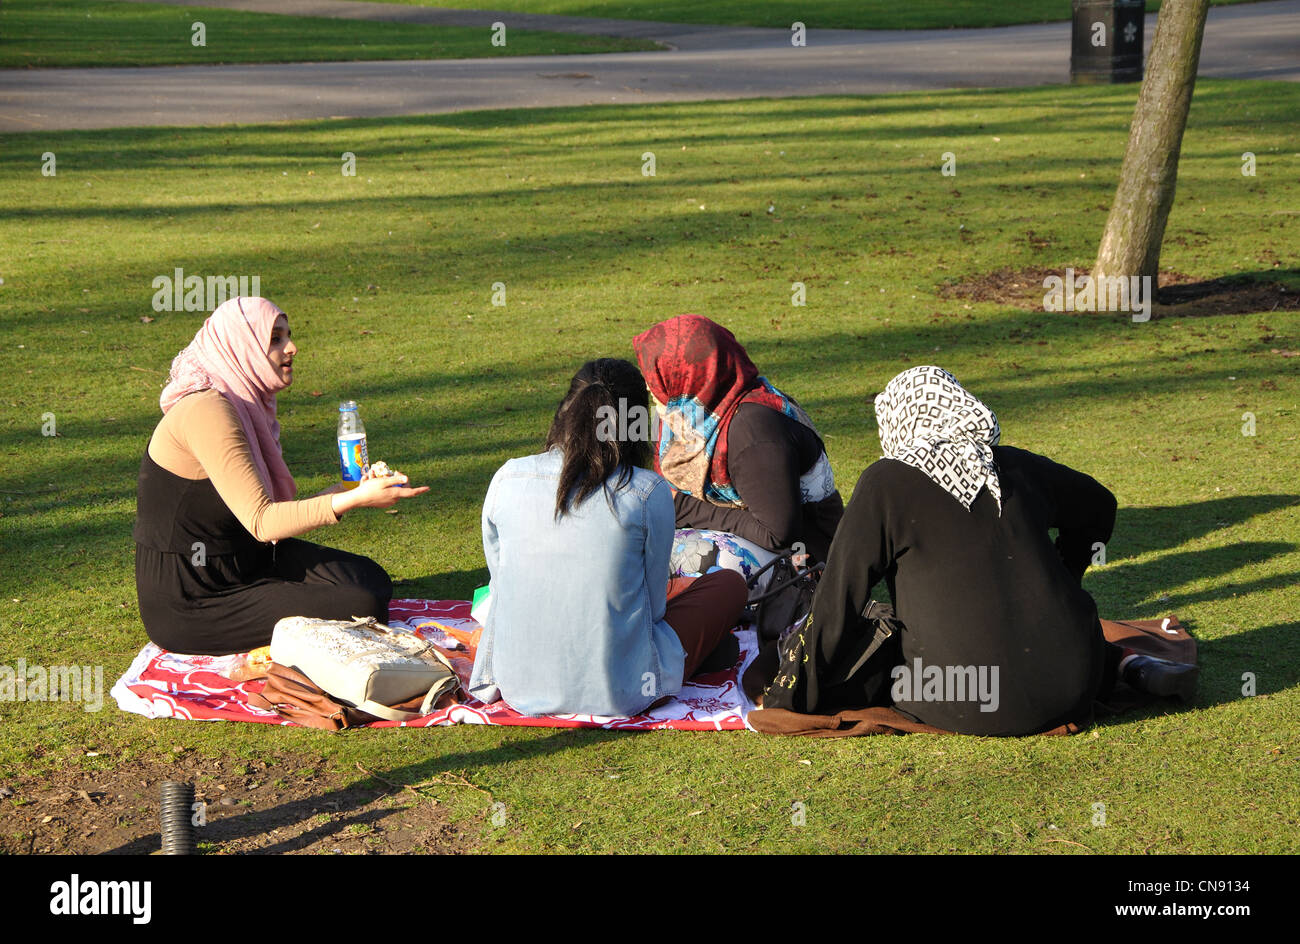 group of British muslim women sitting in Abbey Park,Leicester, England, UK - Stock Image